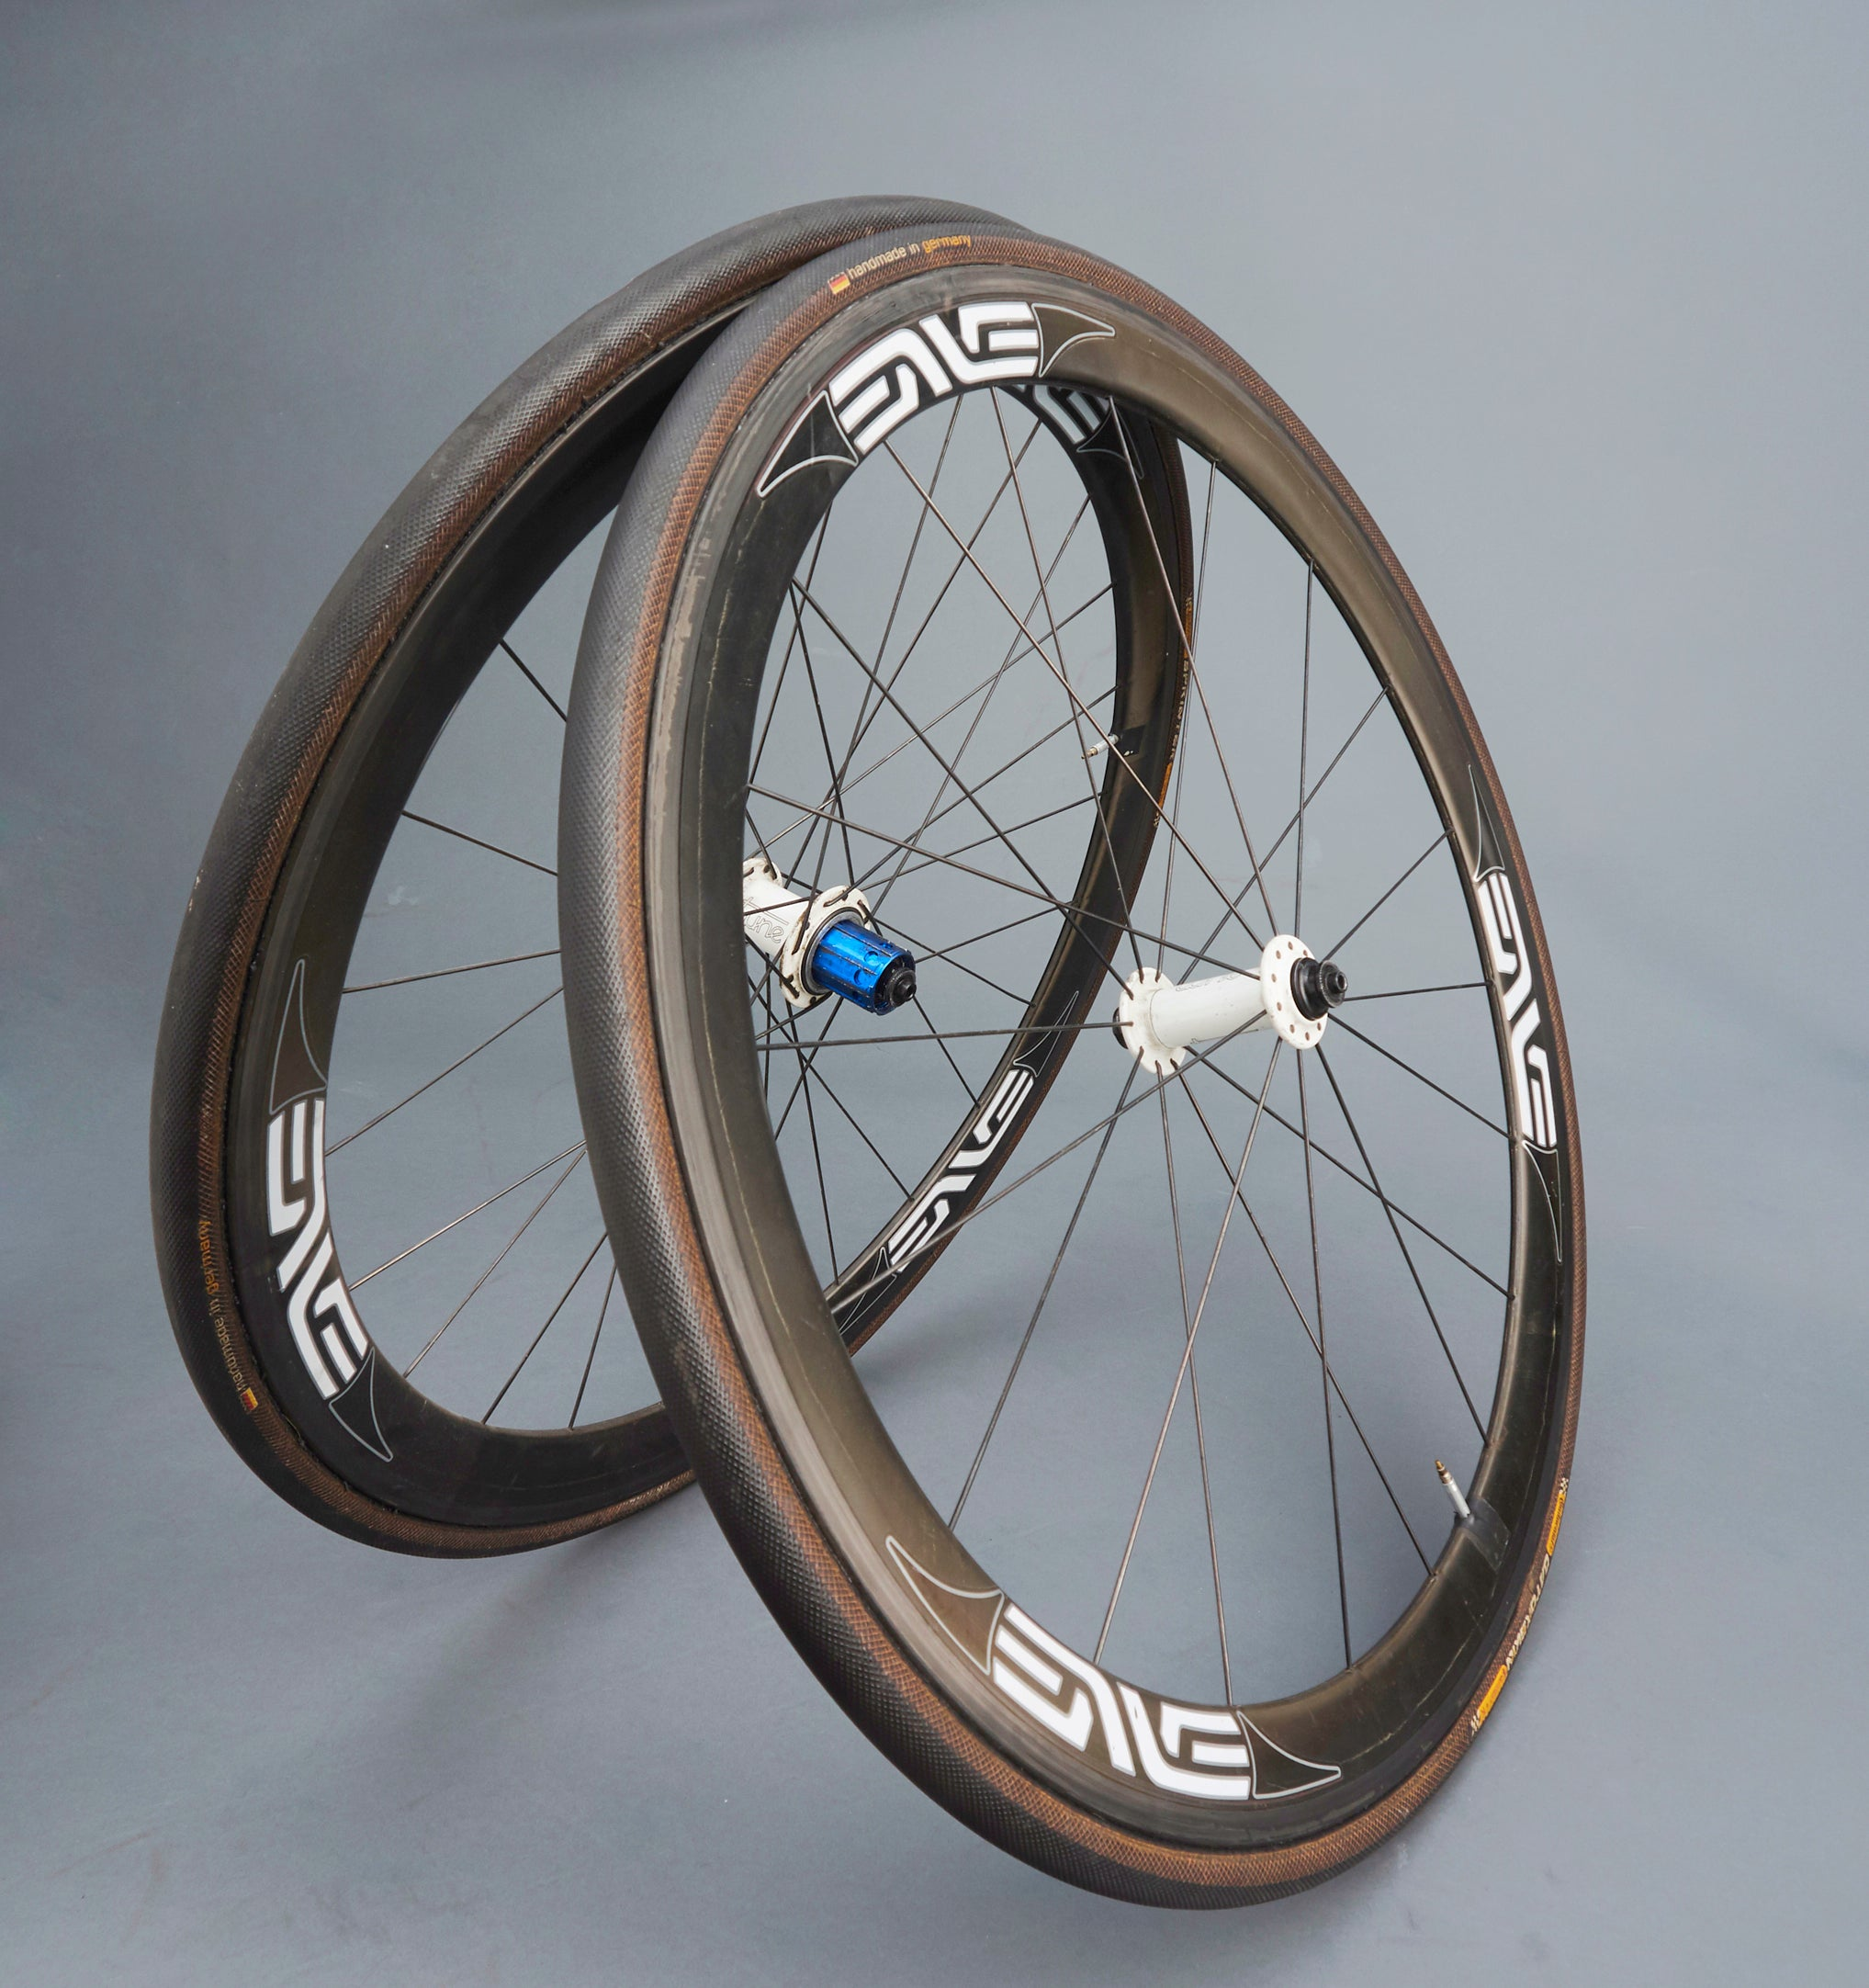 ENVE 4.5 Classic Tubulars on Tune Hubs